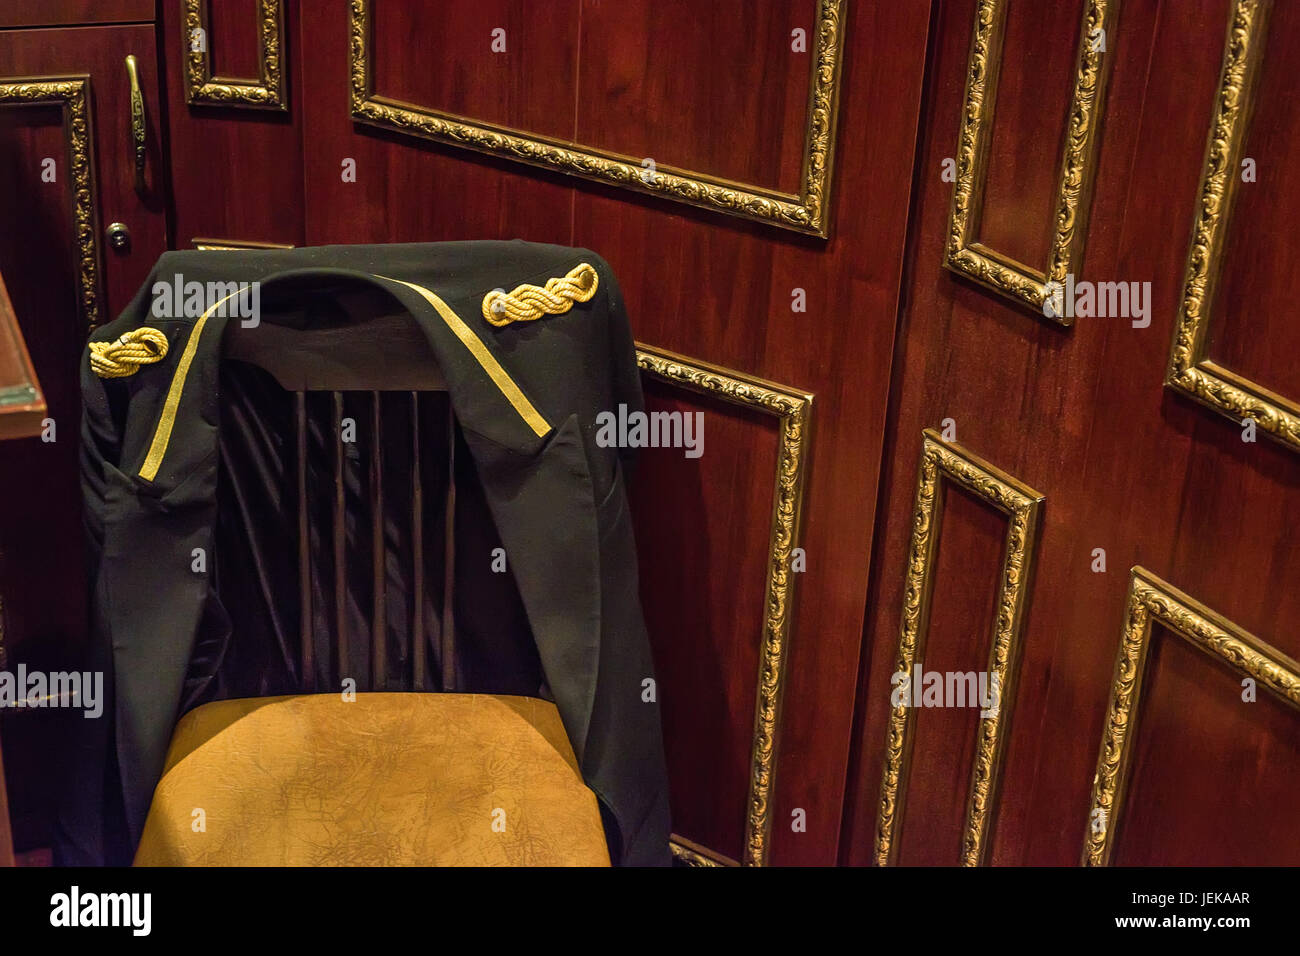 Doorman's place in the hotel - Stock Image